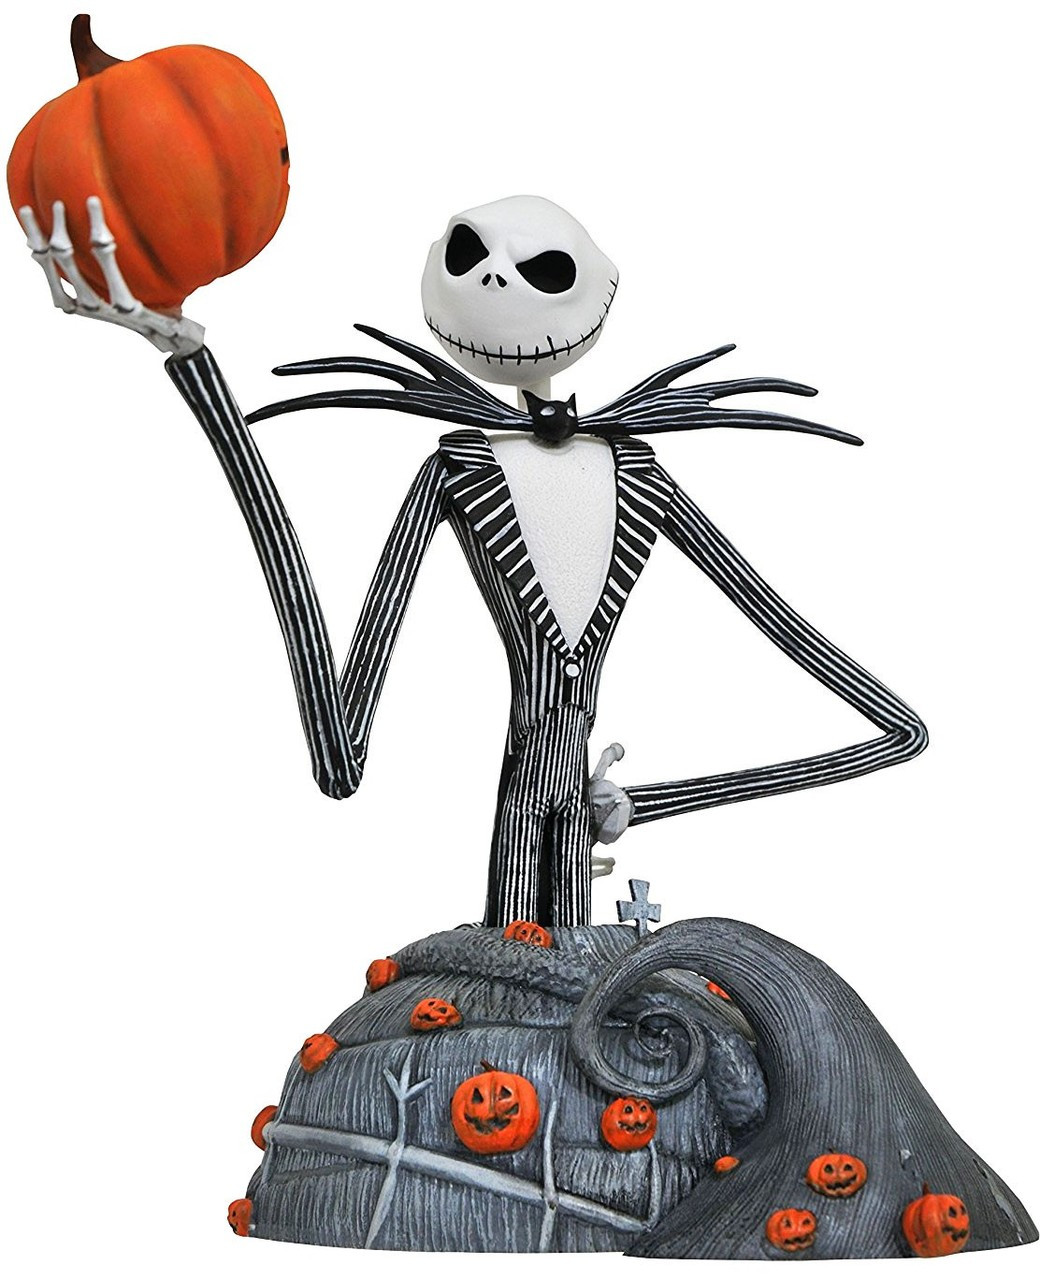 nightmare before christmas jack skellington bust - Jack From Nightmare Before Christmas